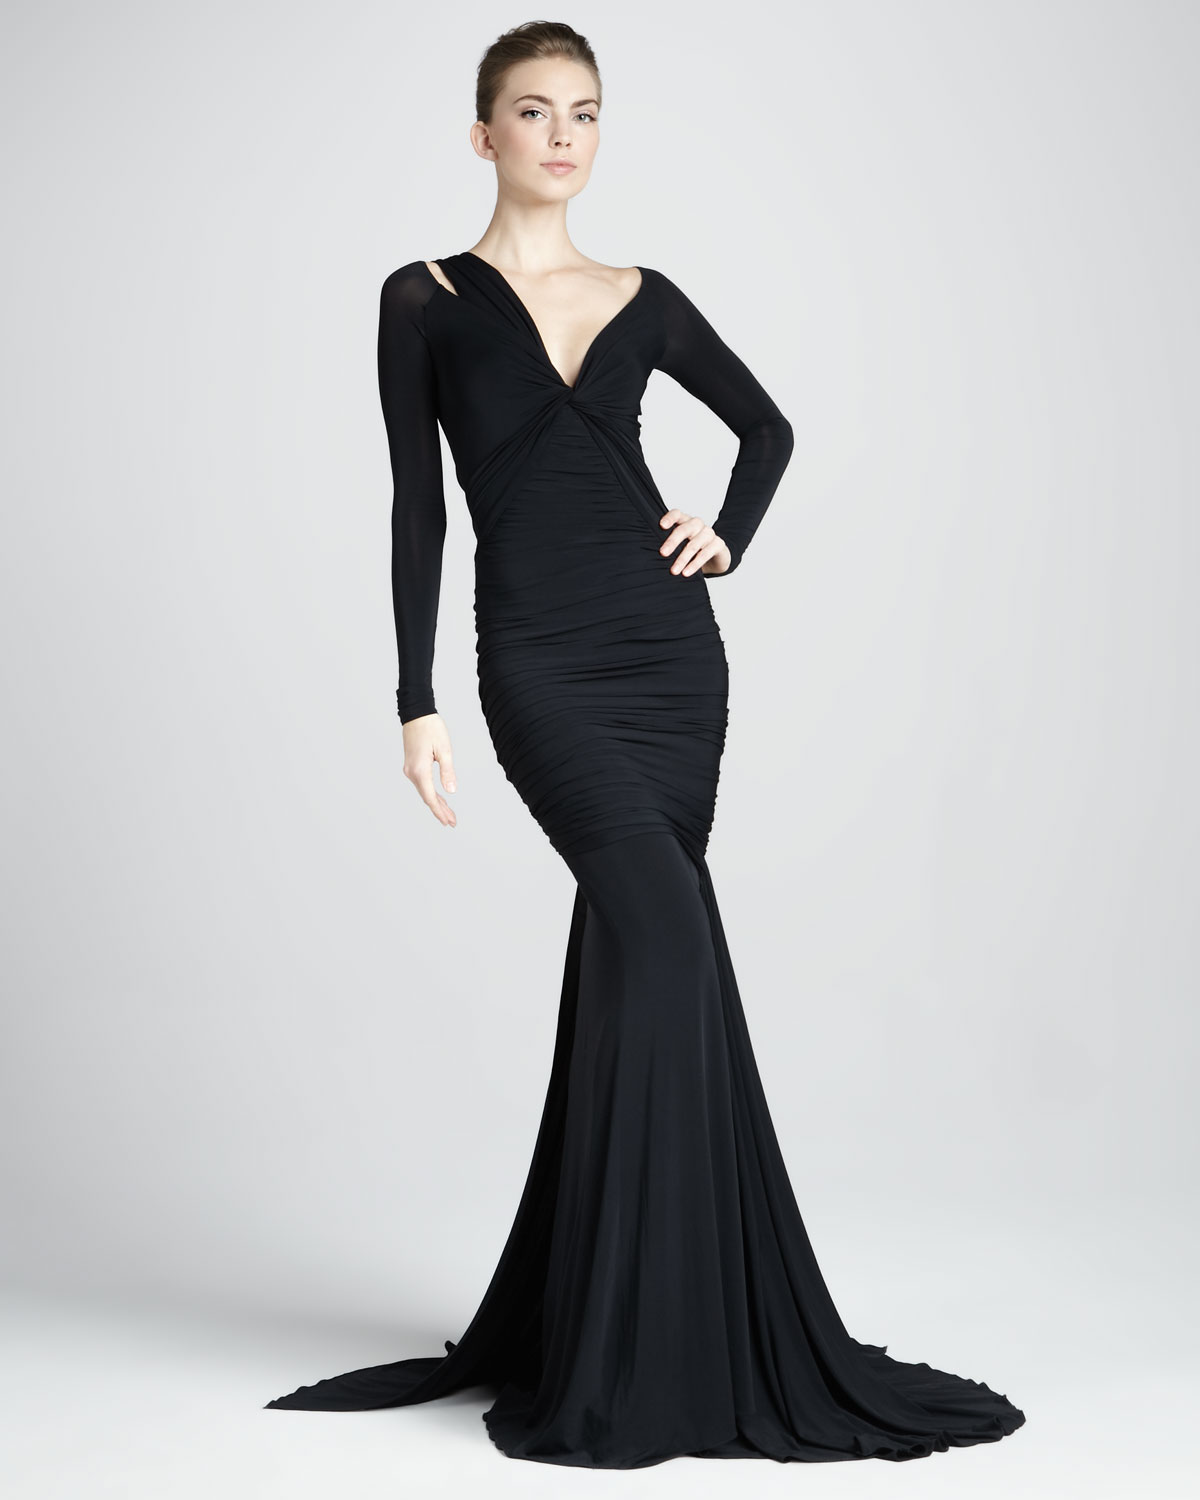 Lyst - Donna Karan Long-sleeve Mermaid Jersey Gown in Black